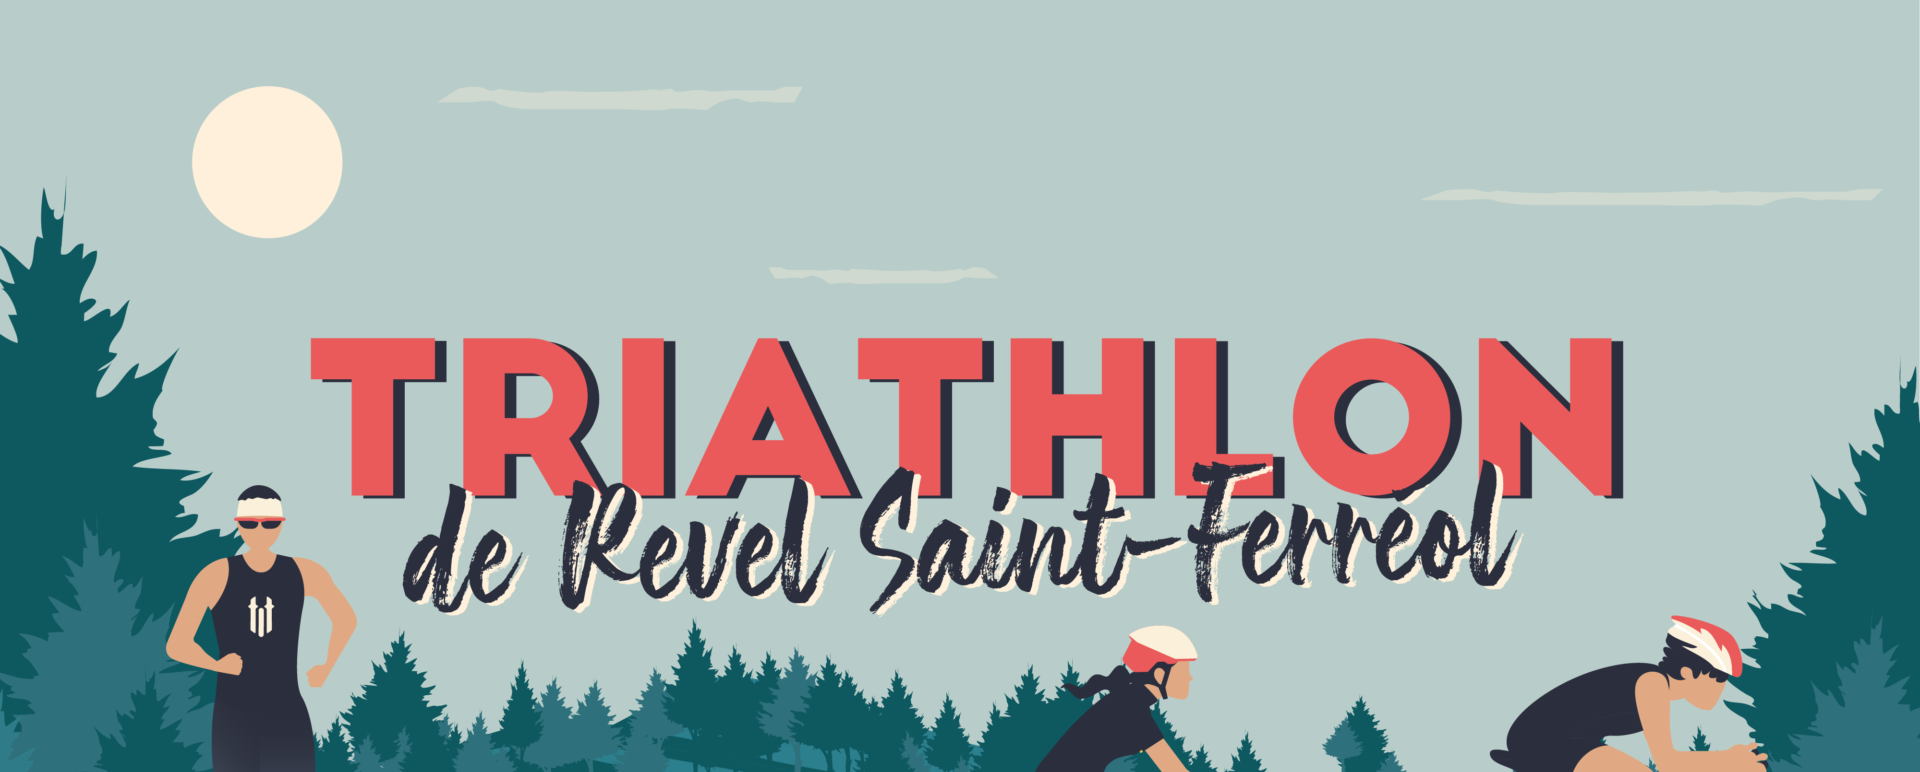 Triathlon de Revel Saint Ferréol BreathMan